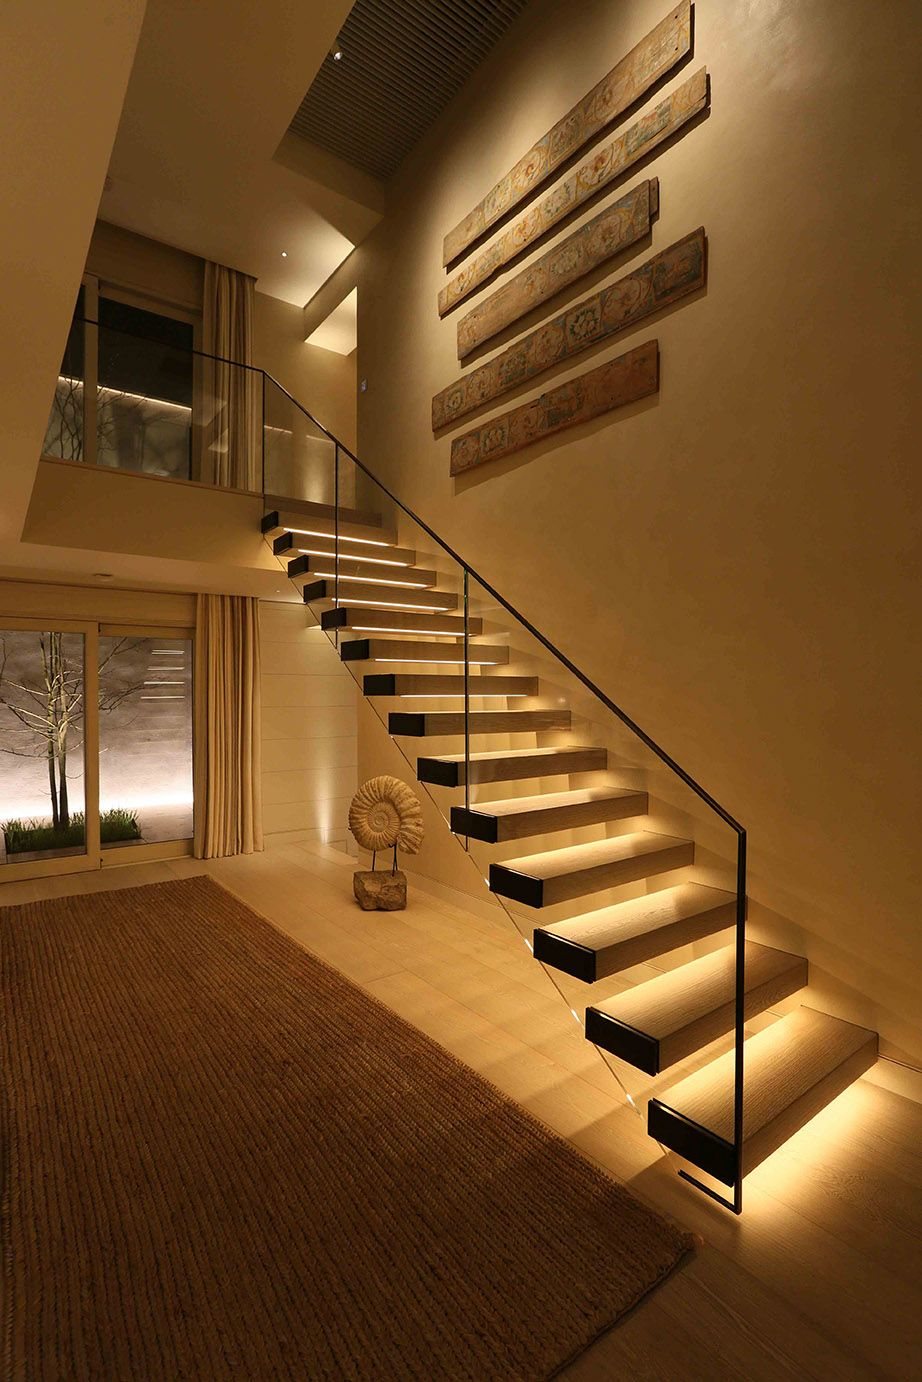 Lighting Basement Washroom Stairs: 10 Most Popular Light For Stairways Ideas